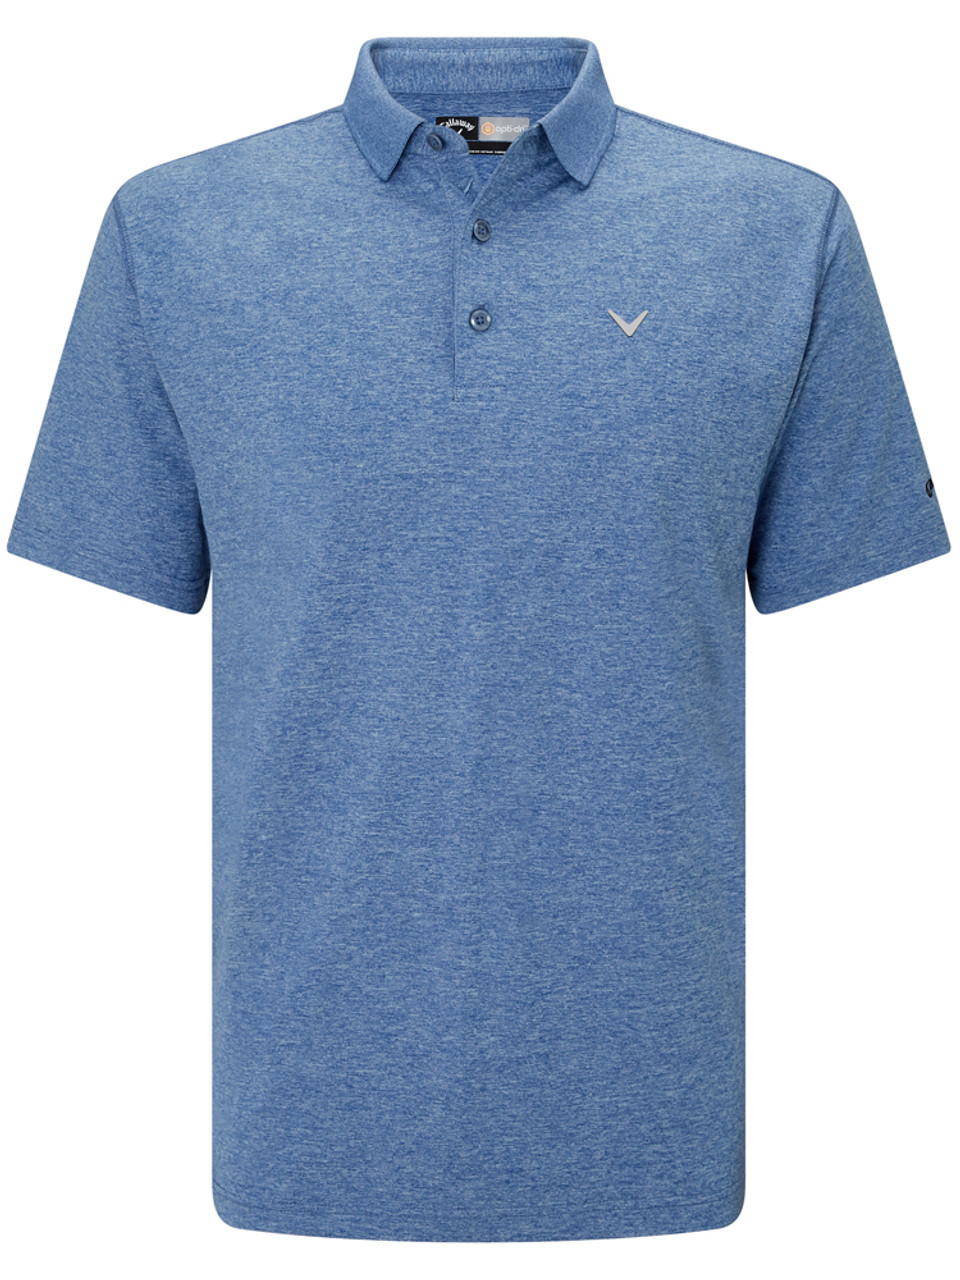 3c89baef9f Callaway Heathered Polo - Moonlight Heather - Mens For Sale | GolfBox